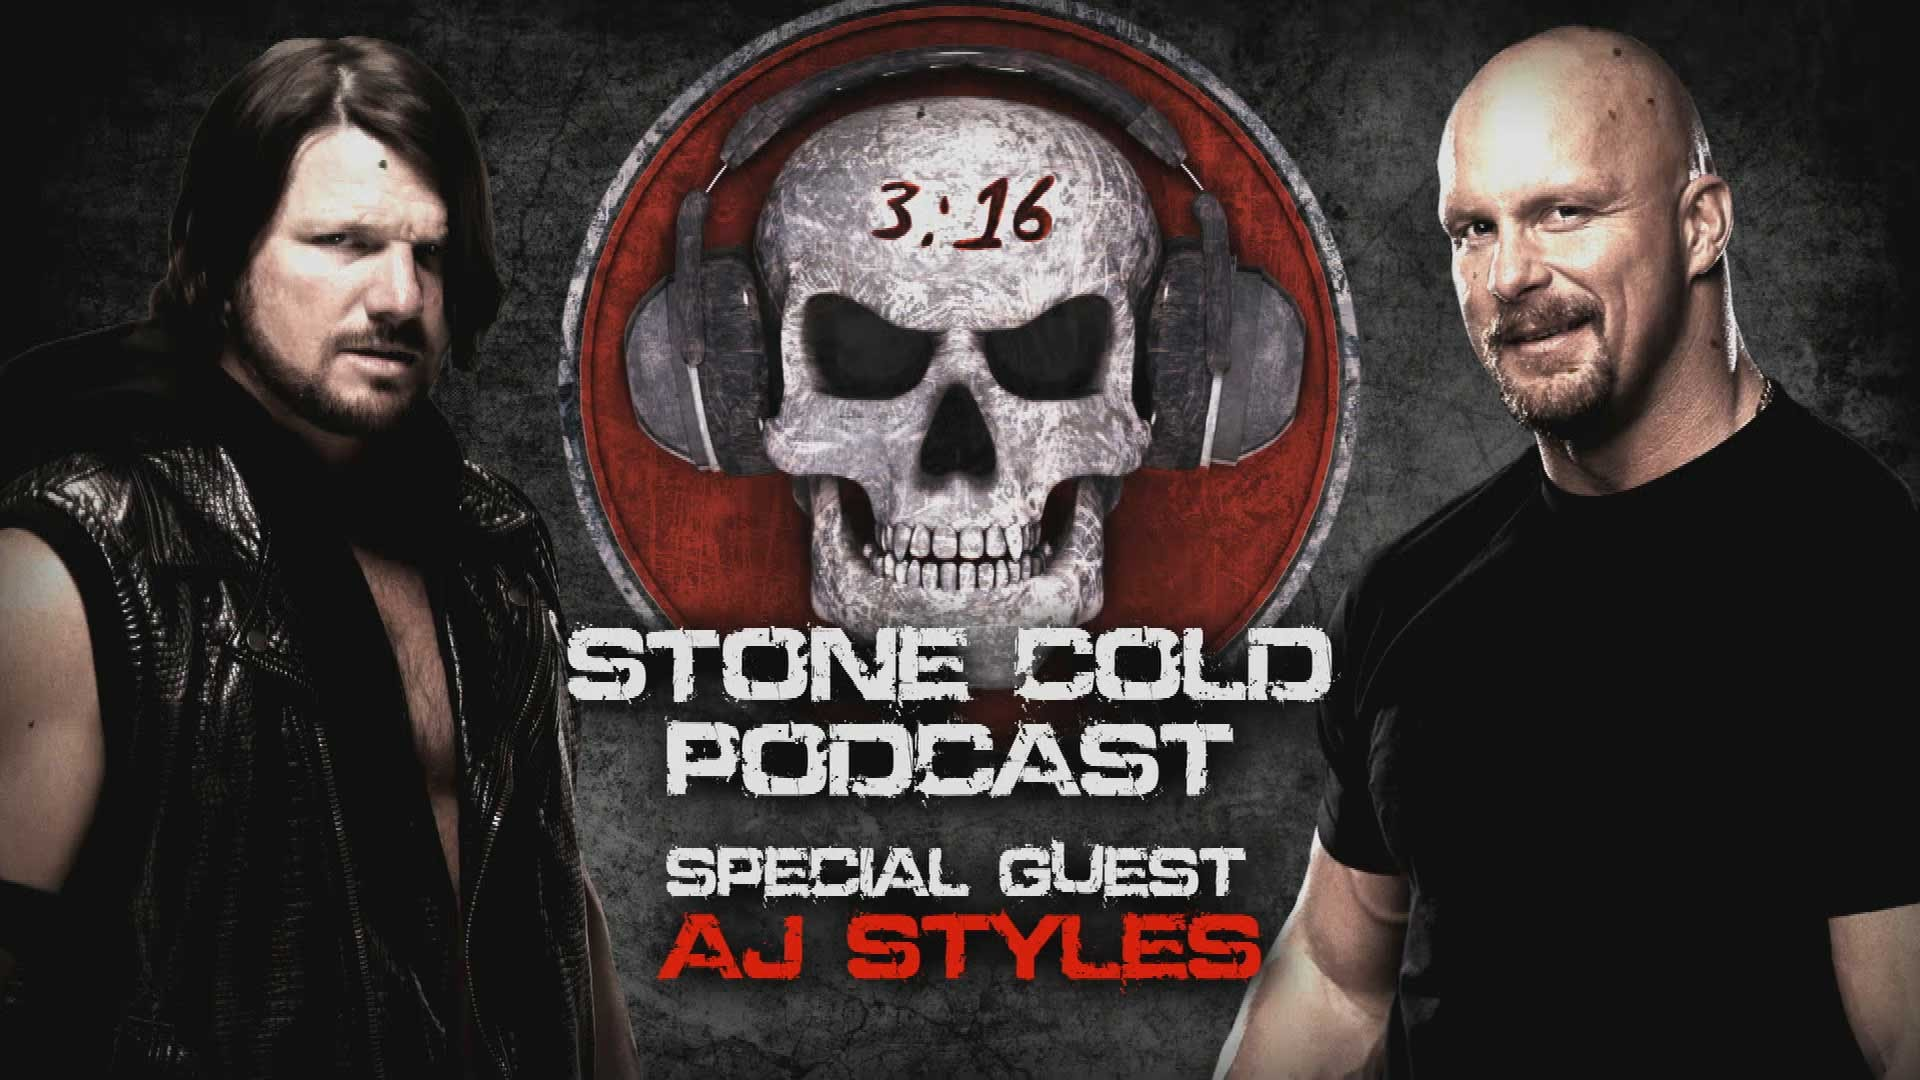 Stone Cold Podcast with AJ Styles